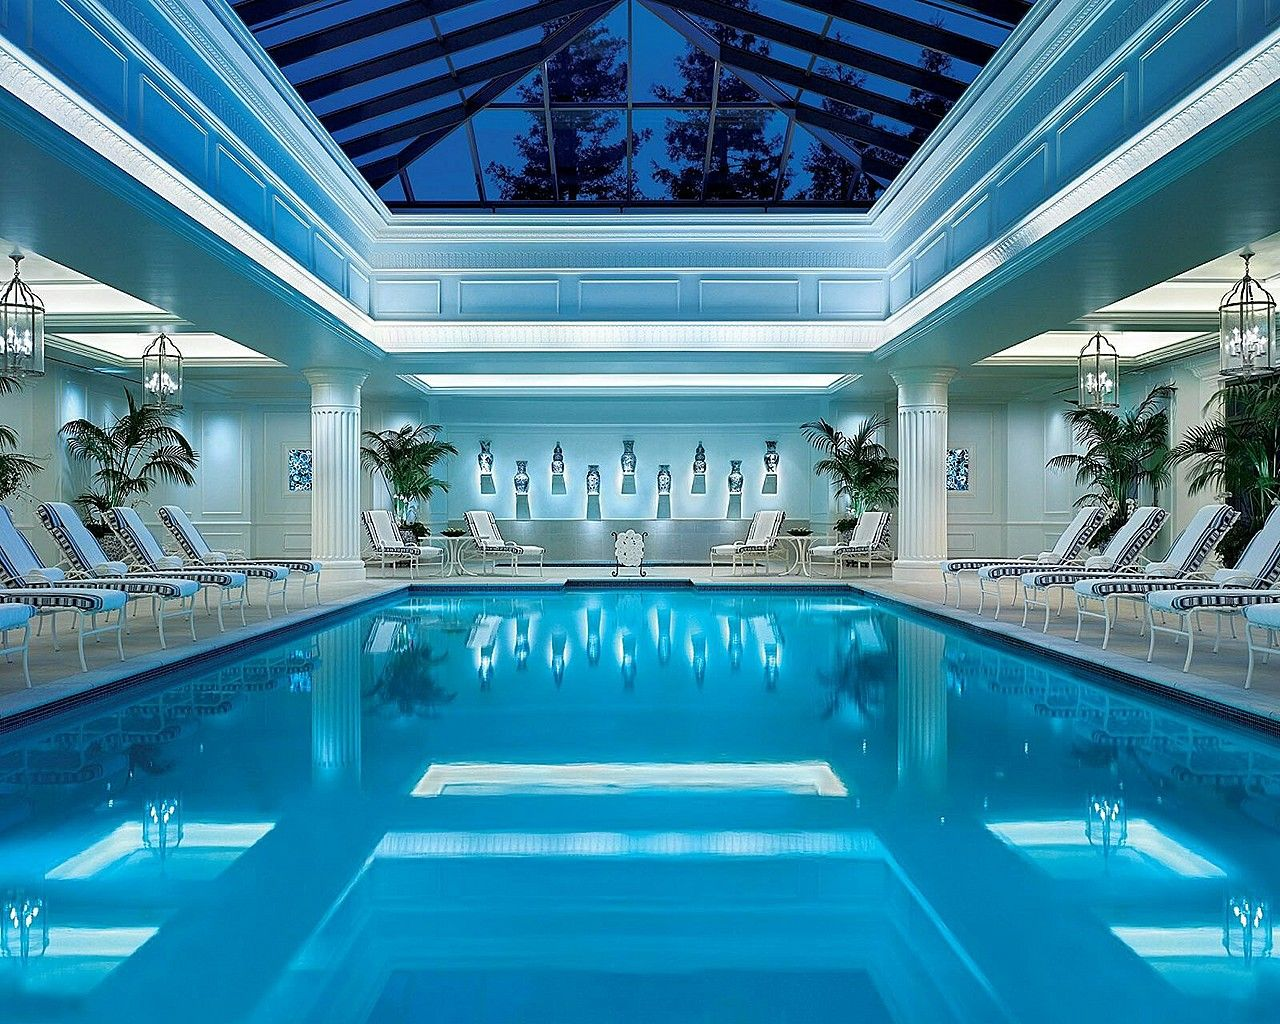 Enchanting Indoor Swimming Pool In Luxurious Hotel Showing Rectangular Shaped Pool And Lovely Lounge Chairs And Ro Indoor Pool Indoor Swimming Pools Hotel Pool